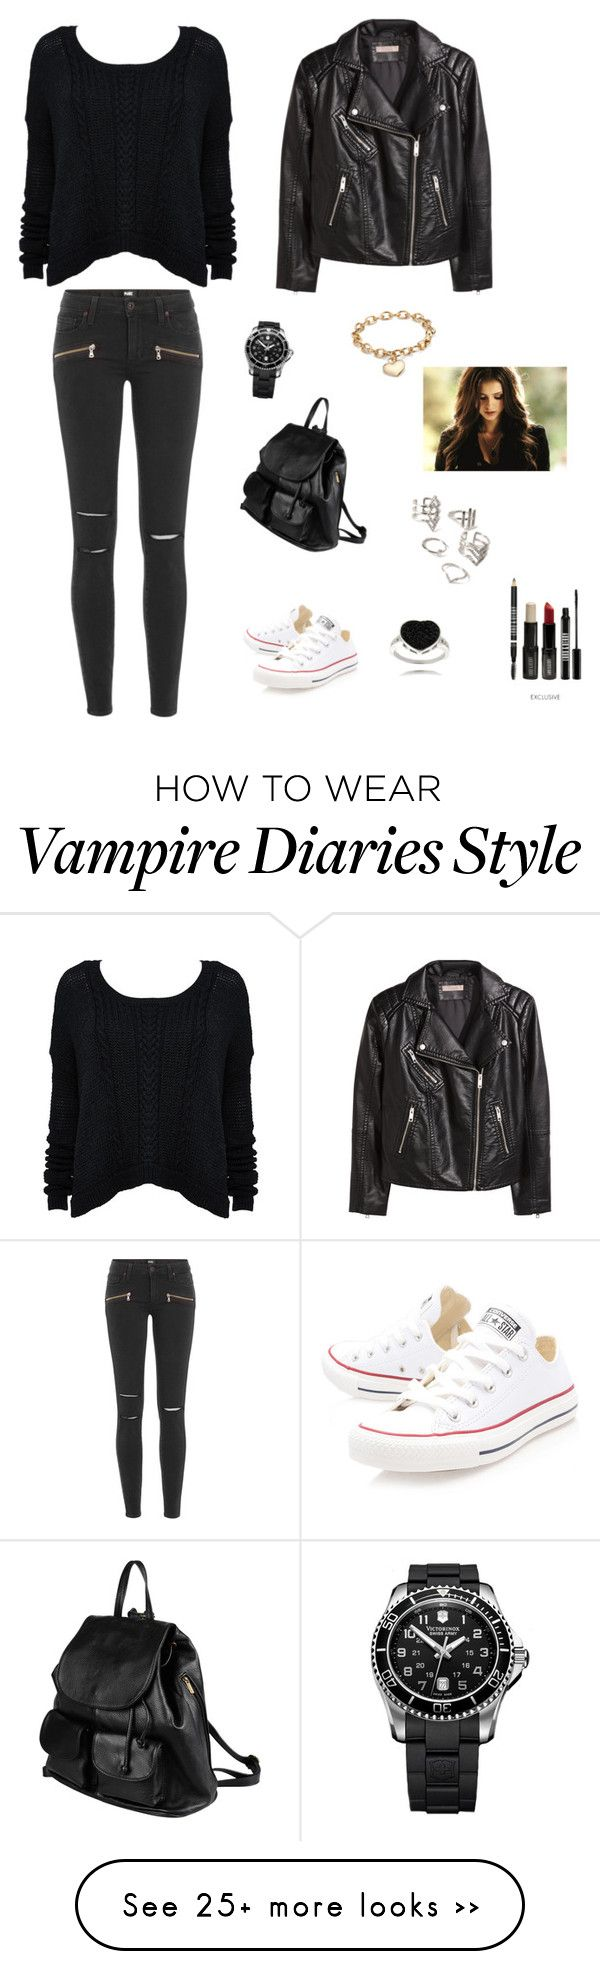 """School ❤"" by francyrizzo on Polyvore featuring H&M, Paige Denim, Converse, Blue Nile, PARENTESI, Forever 21, Lord & Berry and Finesque"